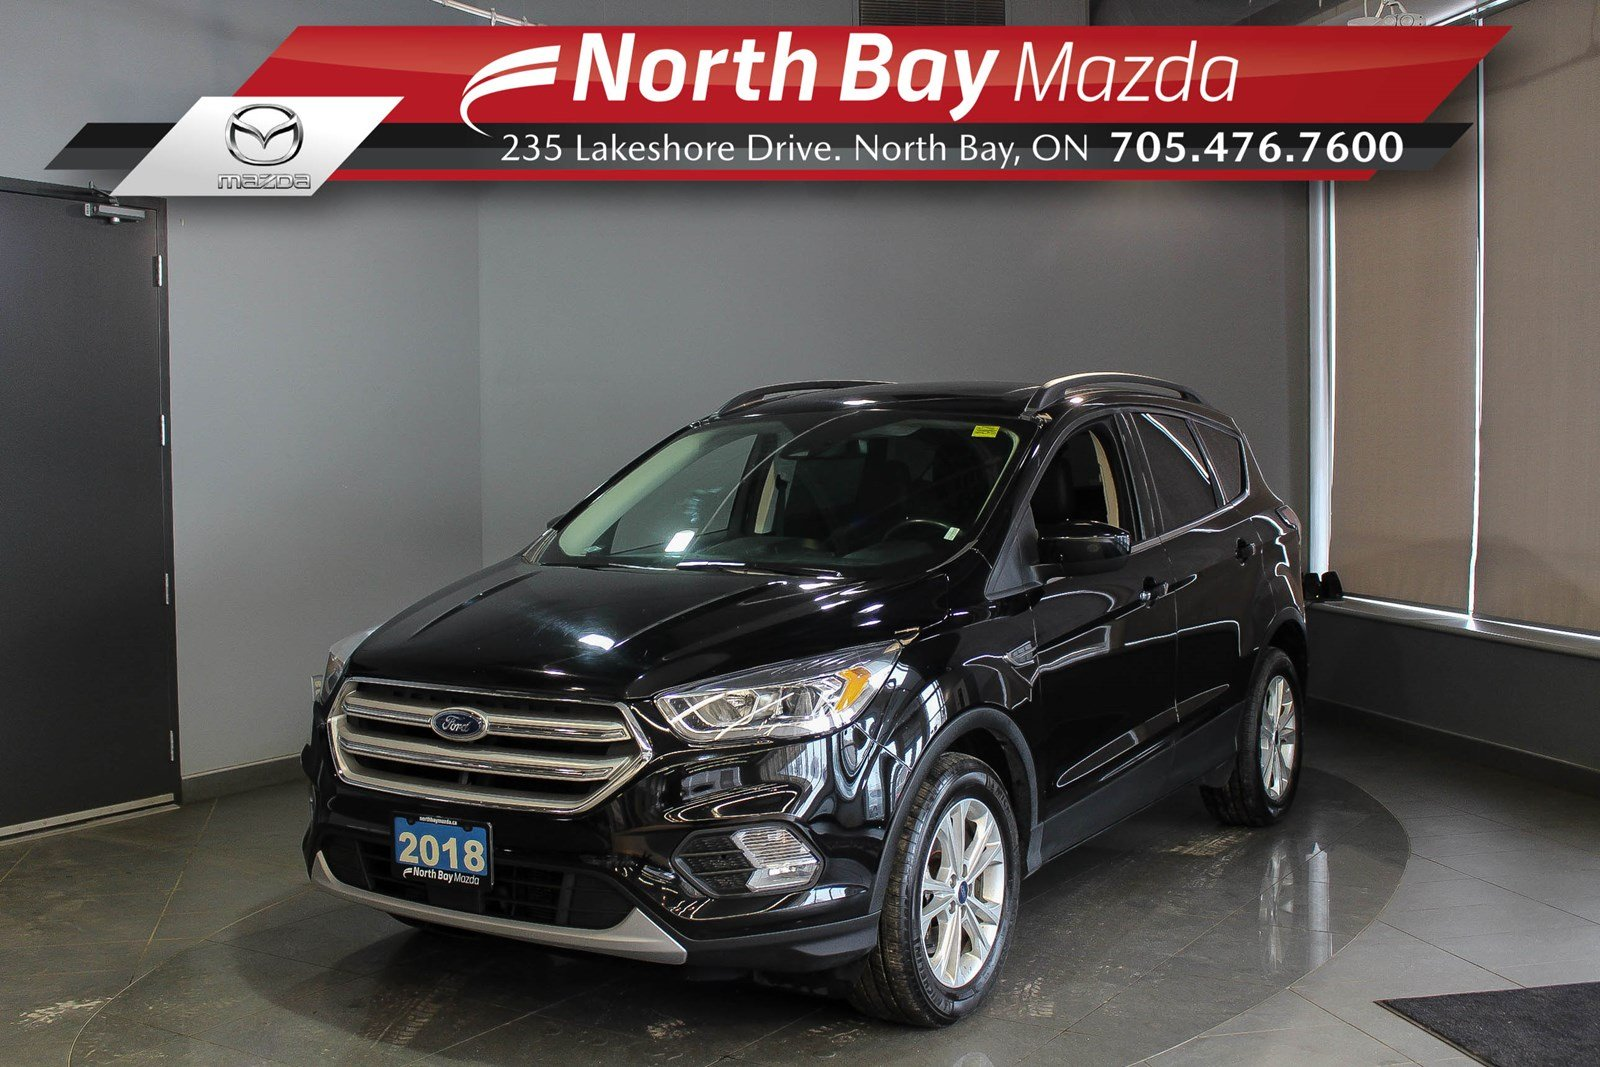 Pre-Owned 2018 Ford Escape SEL AWD with Pano Sunroof, Leather, Heated Seats